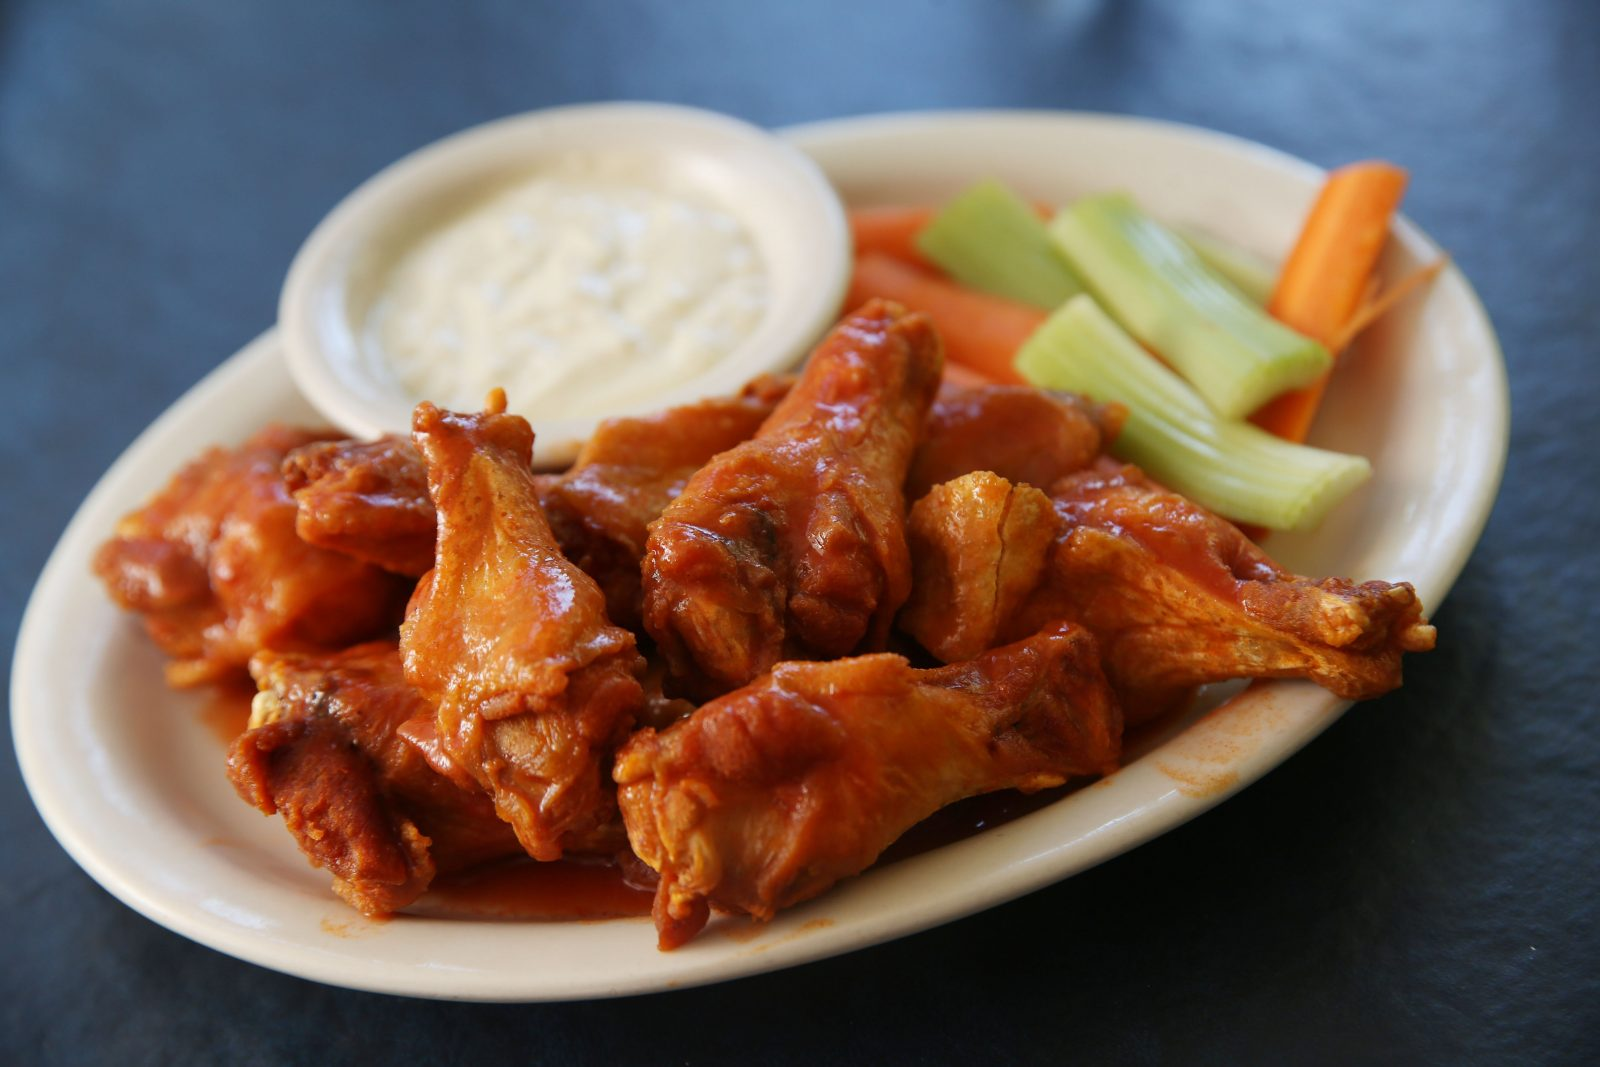 The Village Inn is at 1488 Ferry Road on Grand Island. The jumbo chicken wings are served with bleu cheese dressing, celery and carrots. (Sharon Cantillon/Buffalo News)